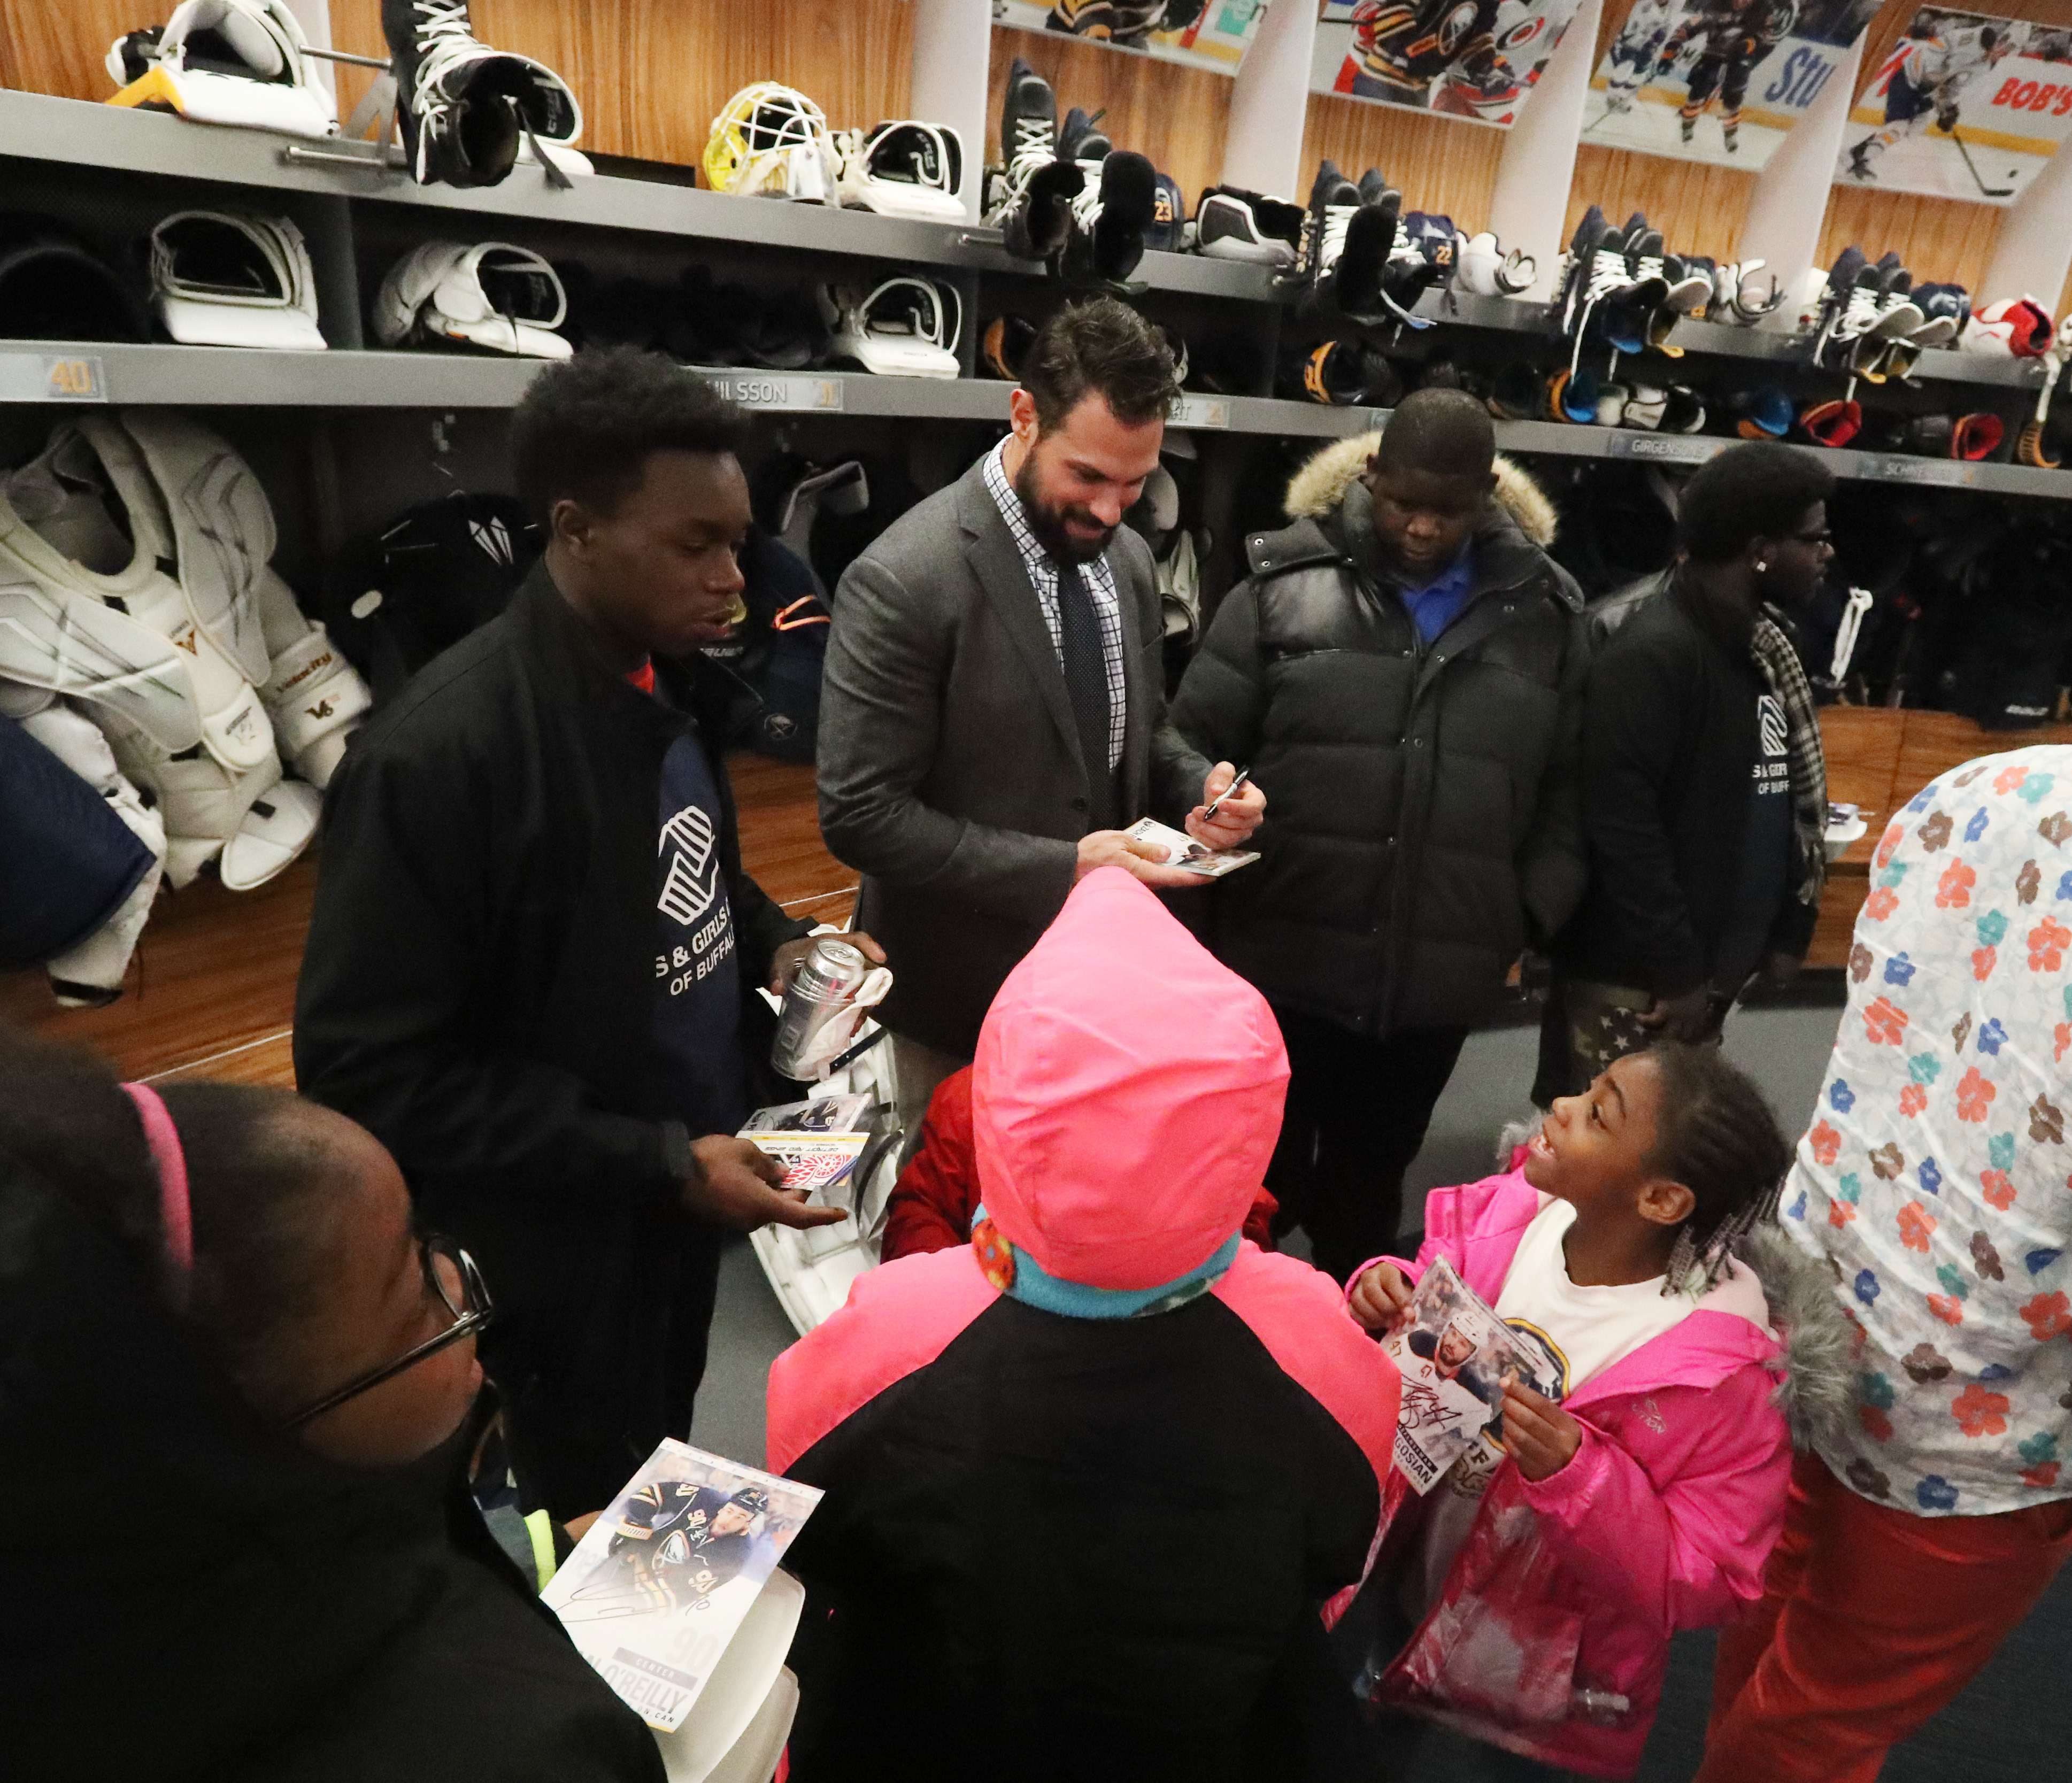 Zach Bogosian, who along with Ryan O'Reilly purchased a KeyBank Center suite to donate to charity, meets with kids in the locker room after Wednesday's game against the Red Wings. (James P. McCoy/Buffalo News)